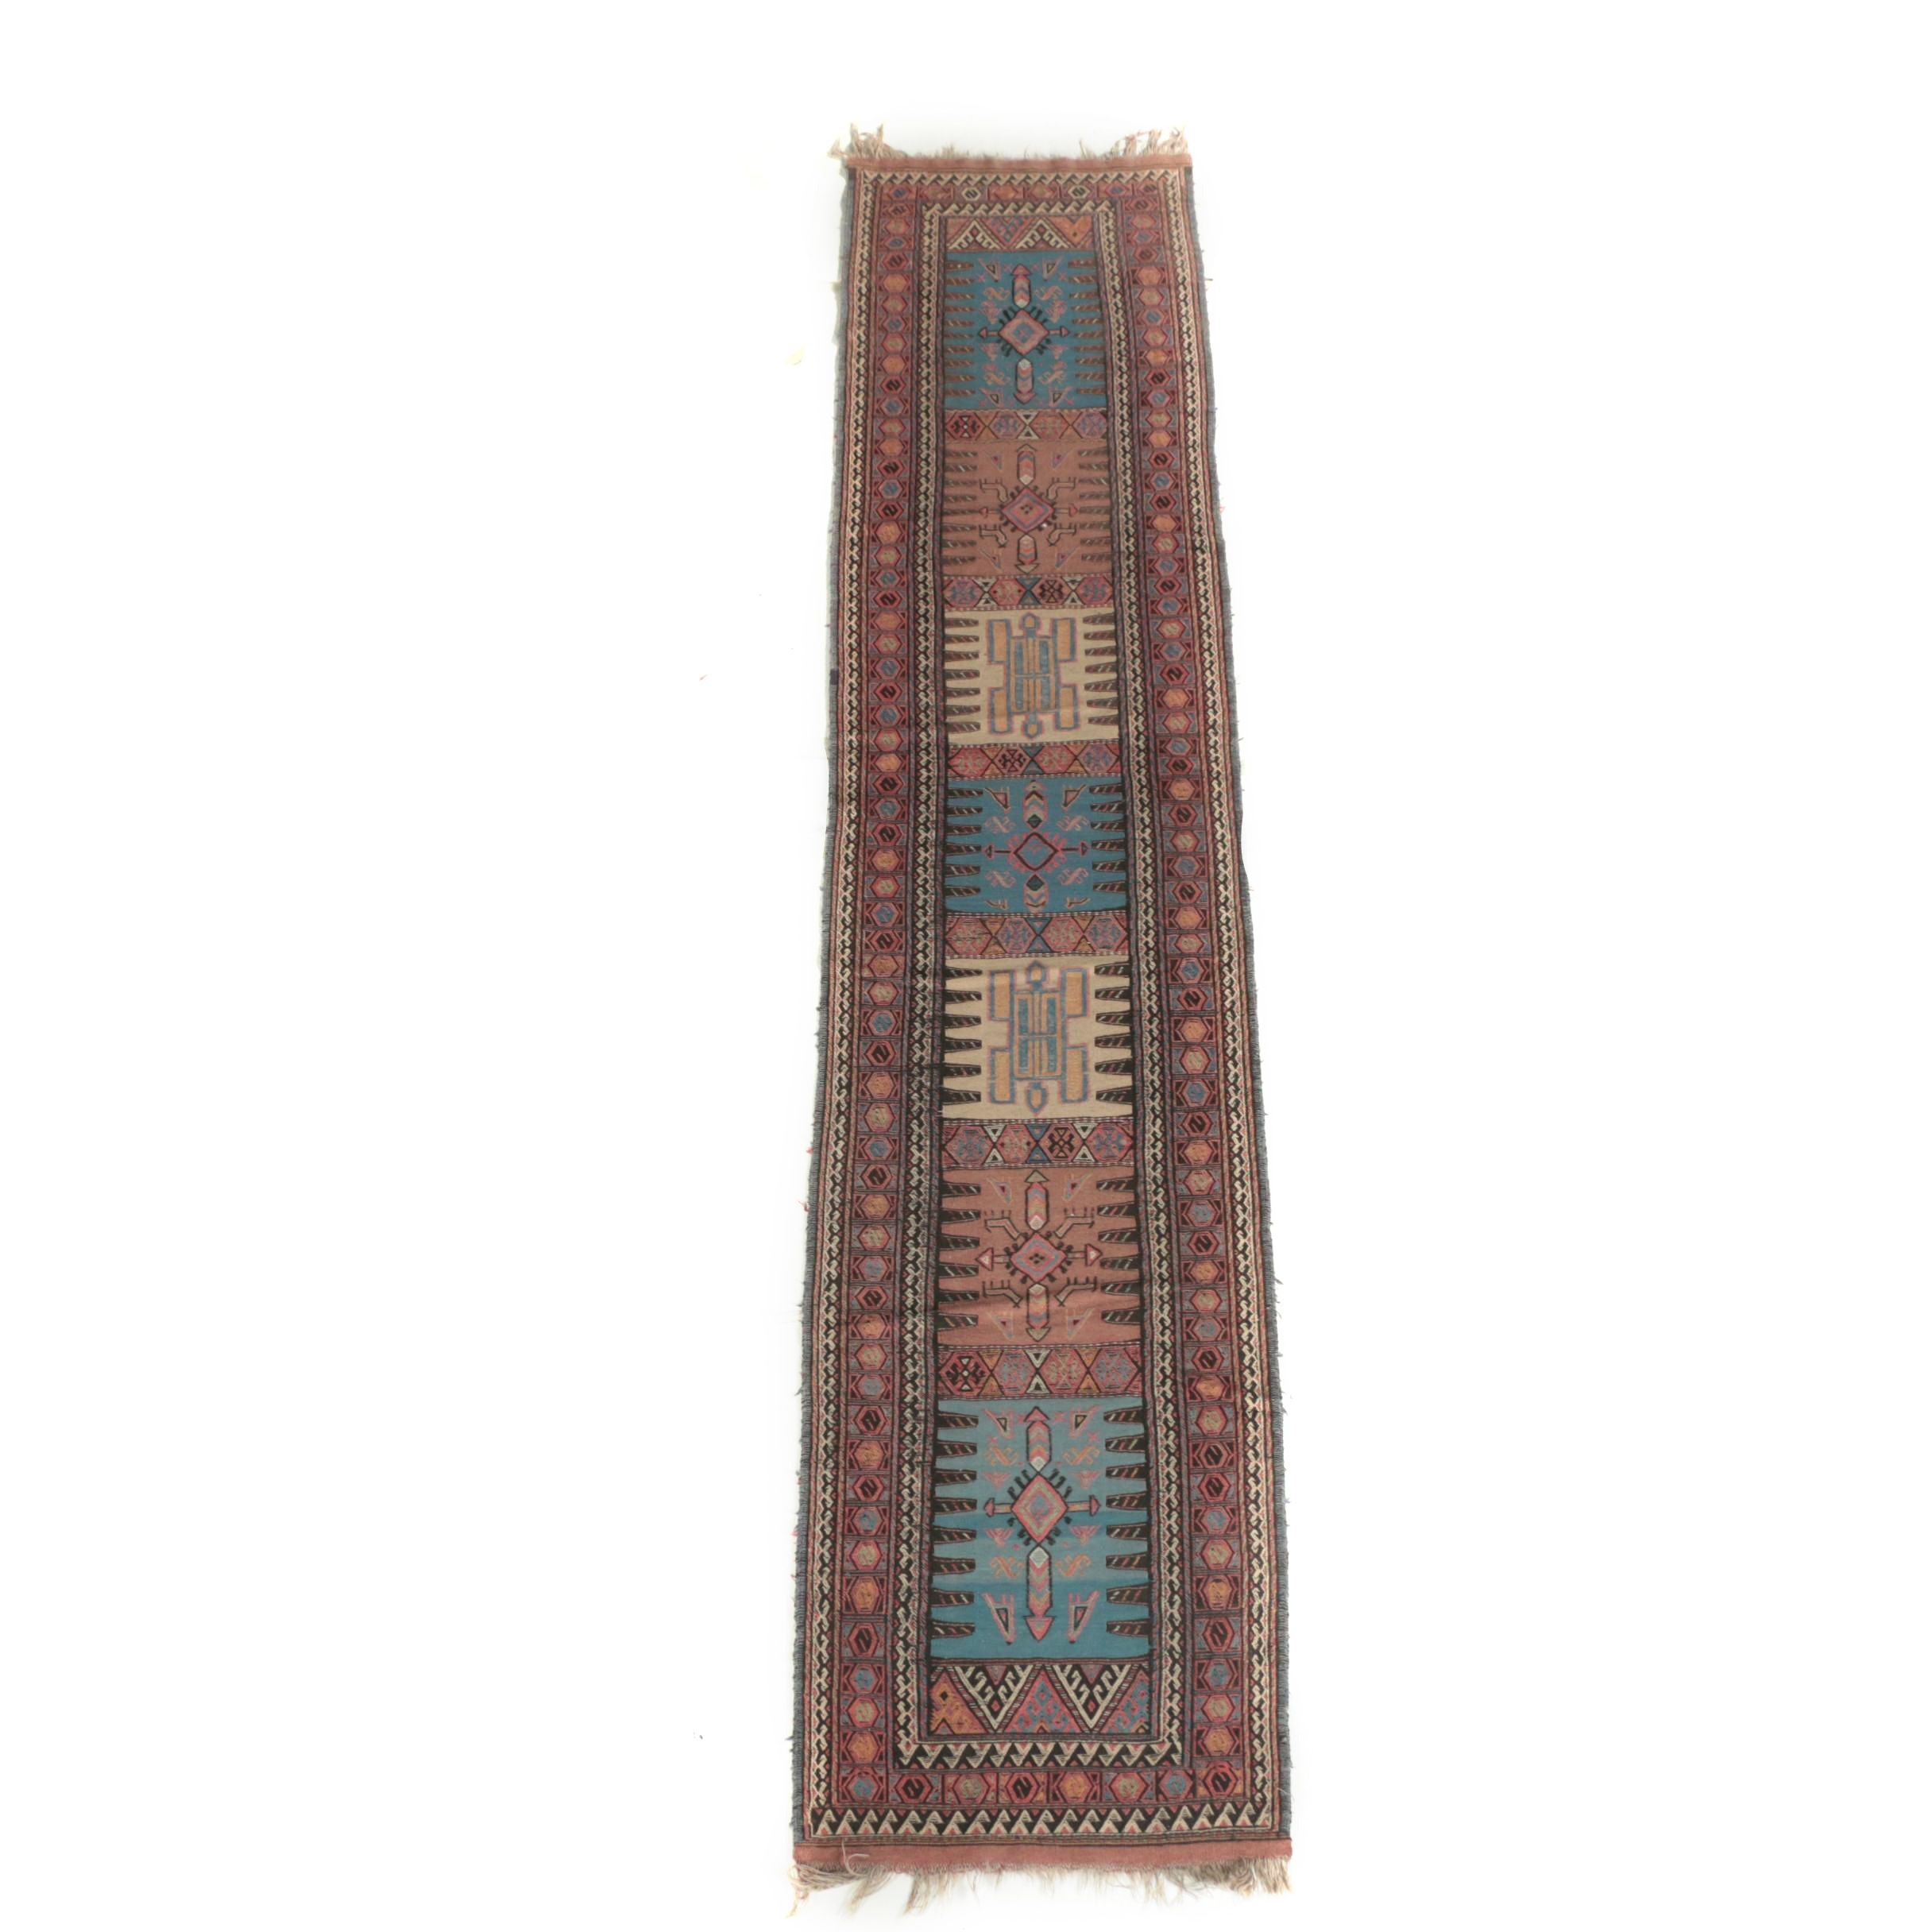 Handwoven and Embroidered Caucasian Wool Kilim Runner